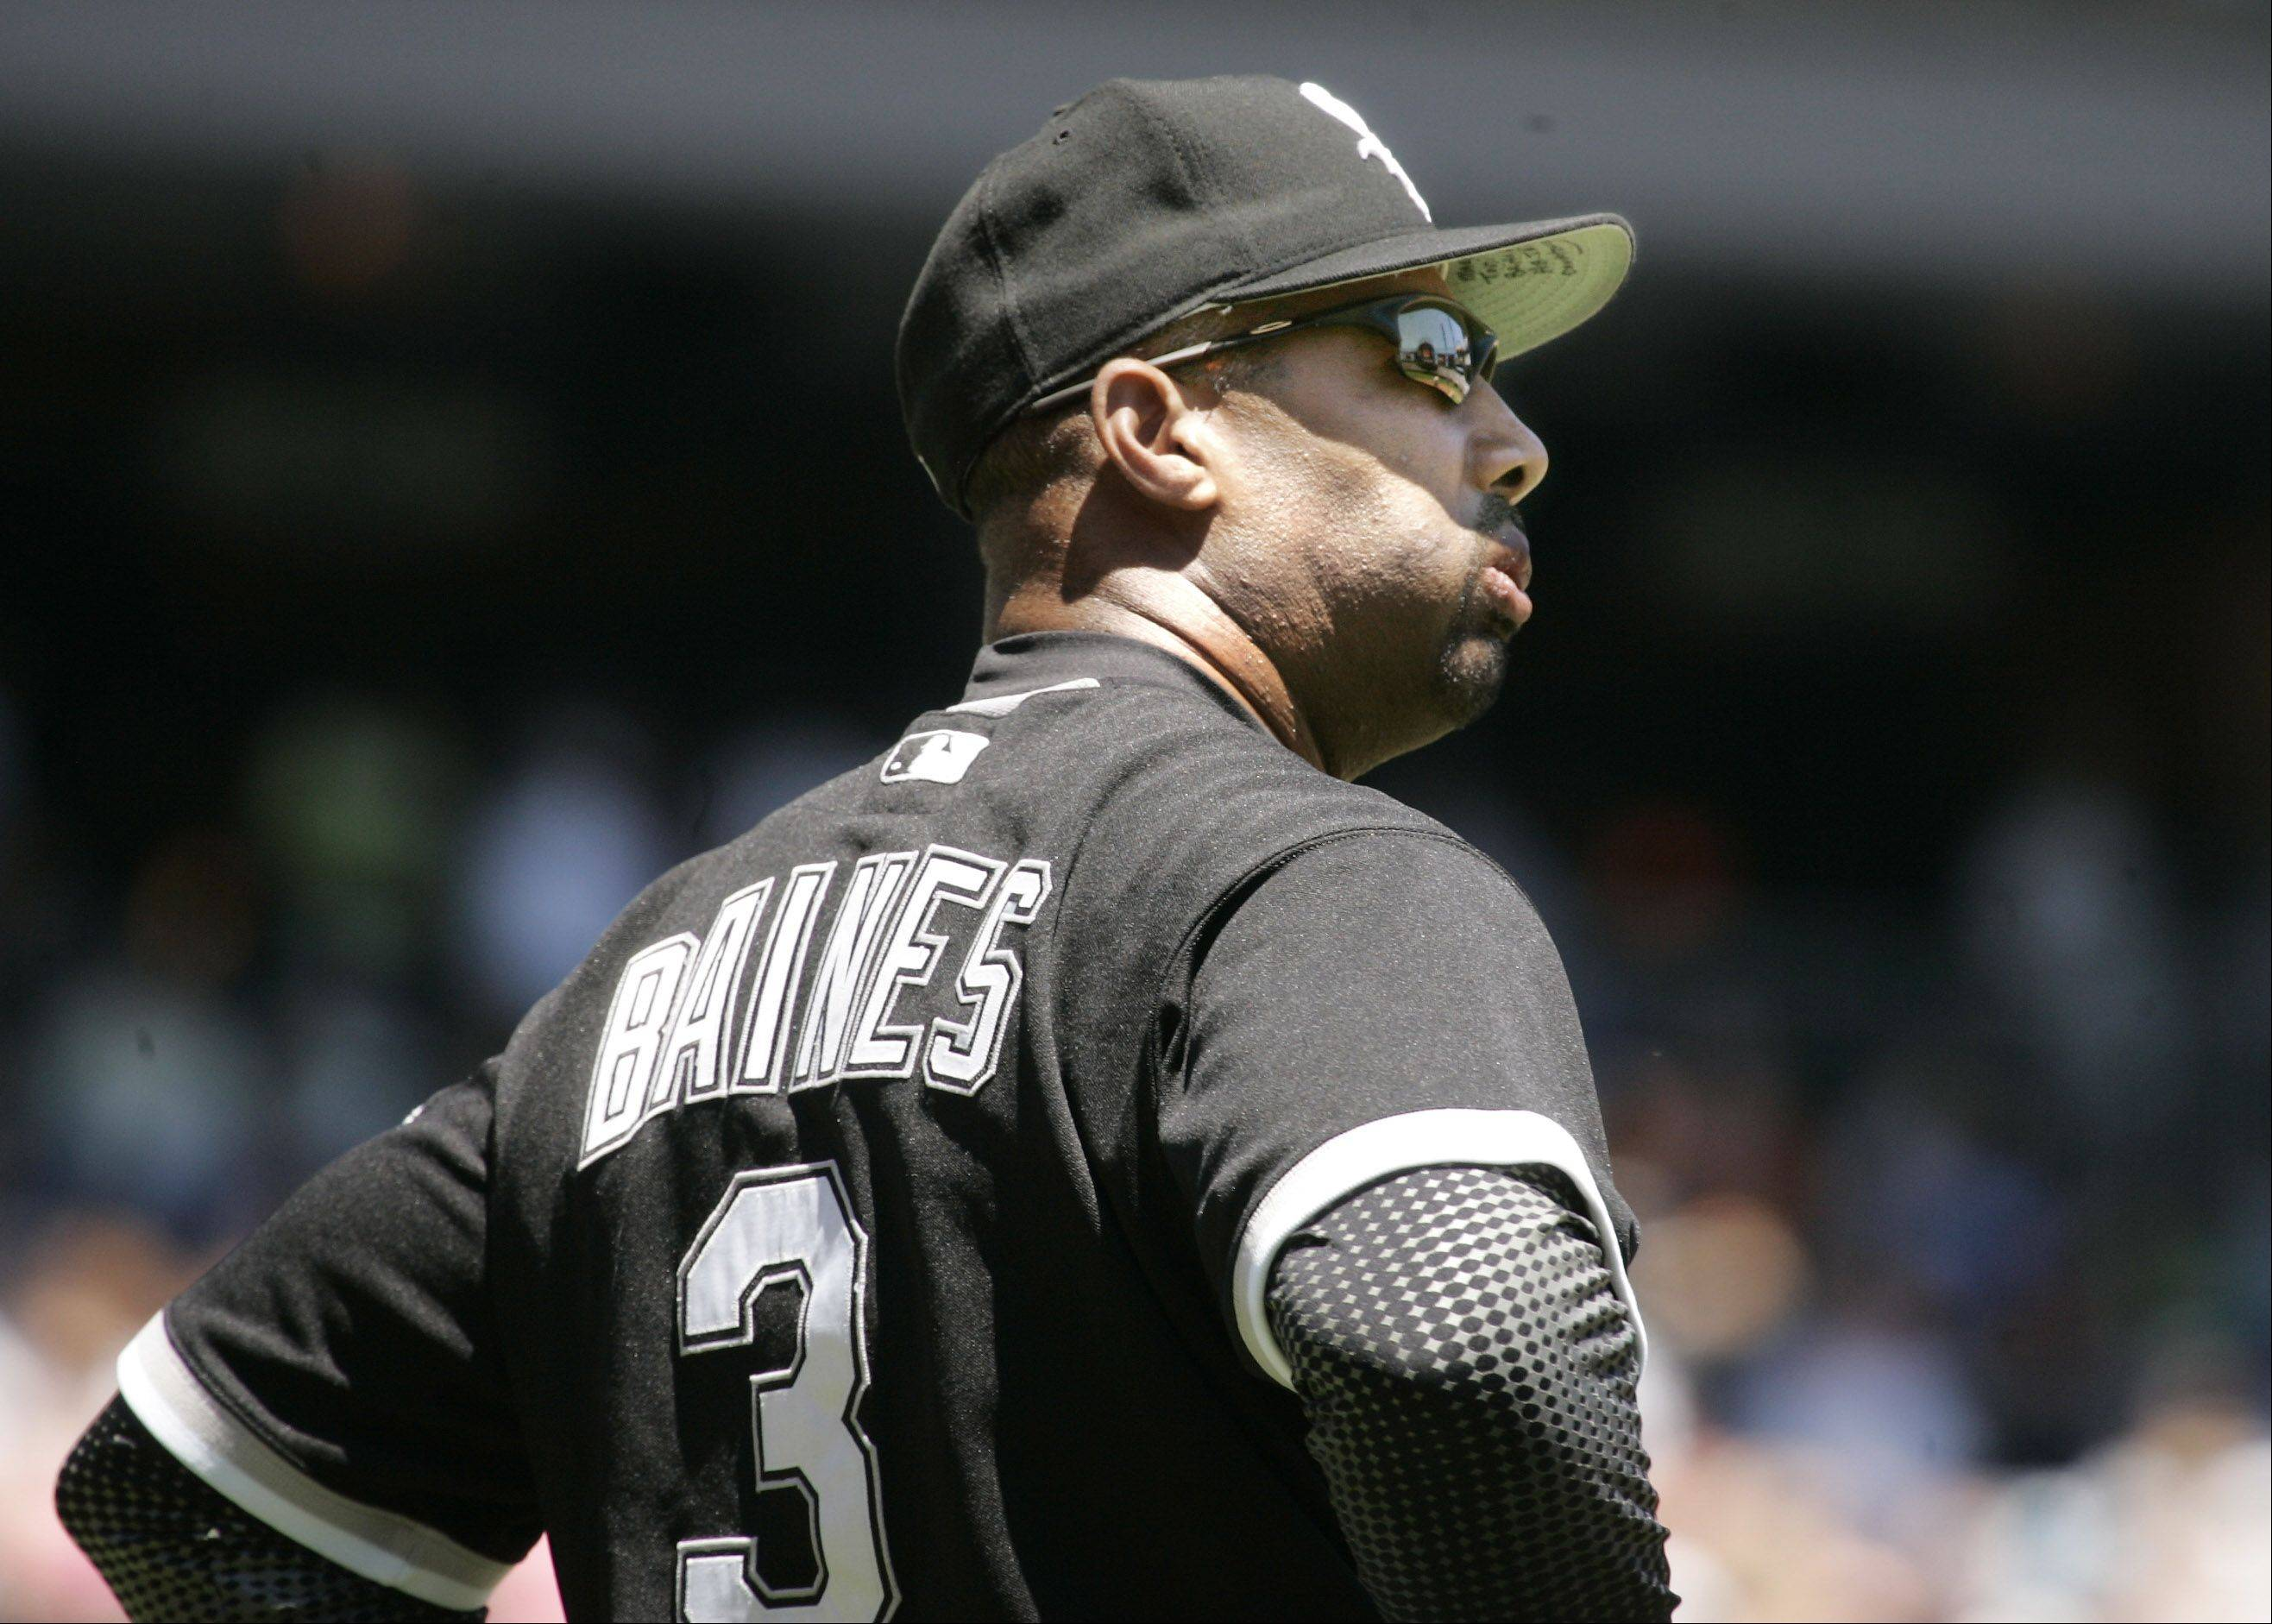 As the assistant hitting coach, Harold Baines will take a more hands-on approach with White Sox hitters in 2013.